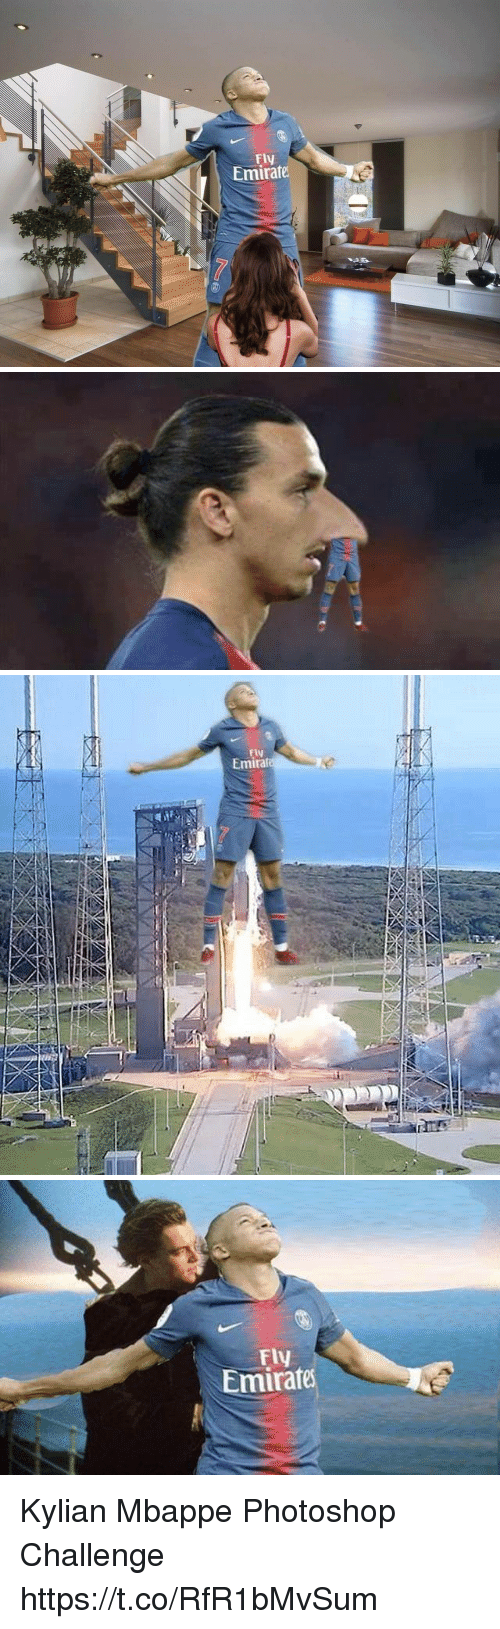 Memes, Photoshop, and 🤖: Fly  Emirate   Fiv  Emira   Fly  Emirate Kylian Mbappe Photoshop Challenge https://t.co/RfR1bMvSum